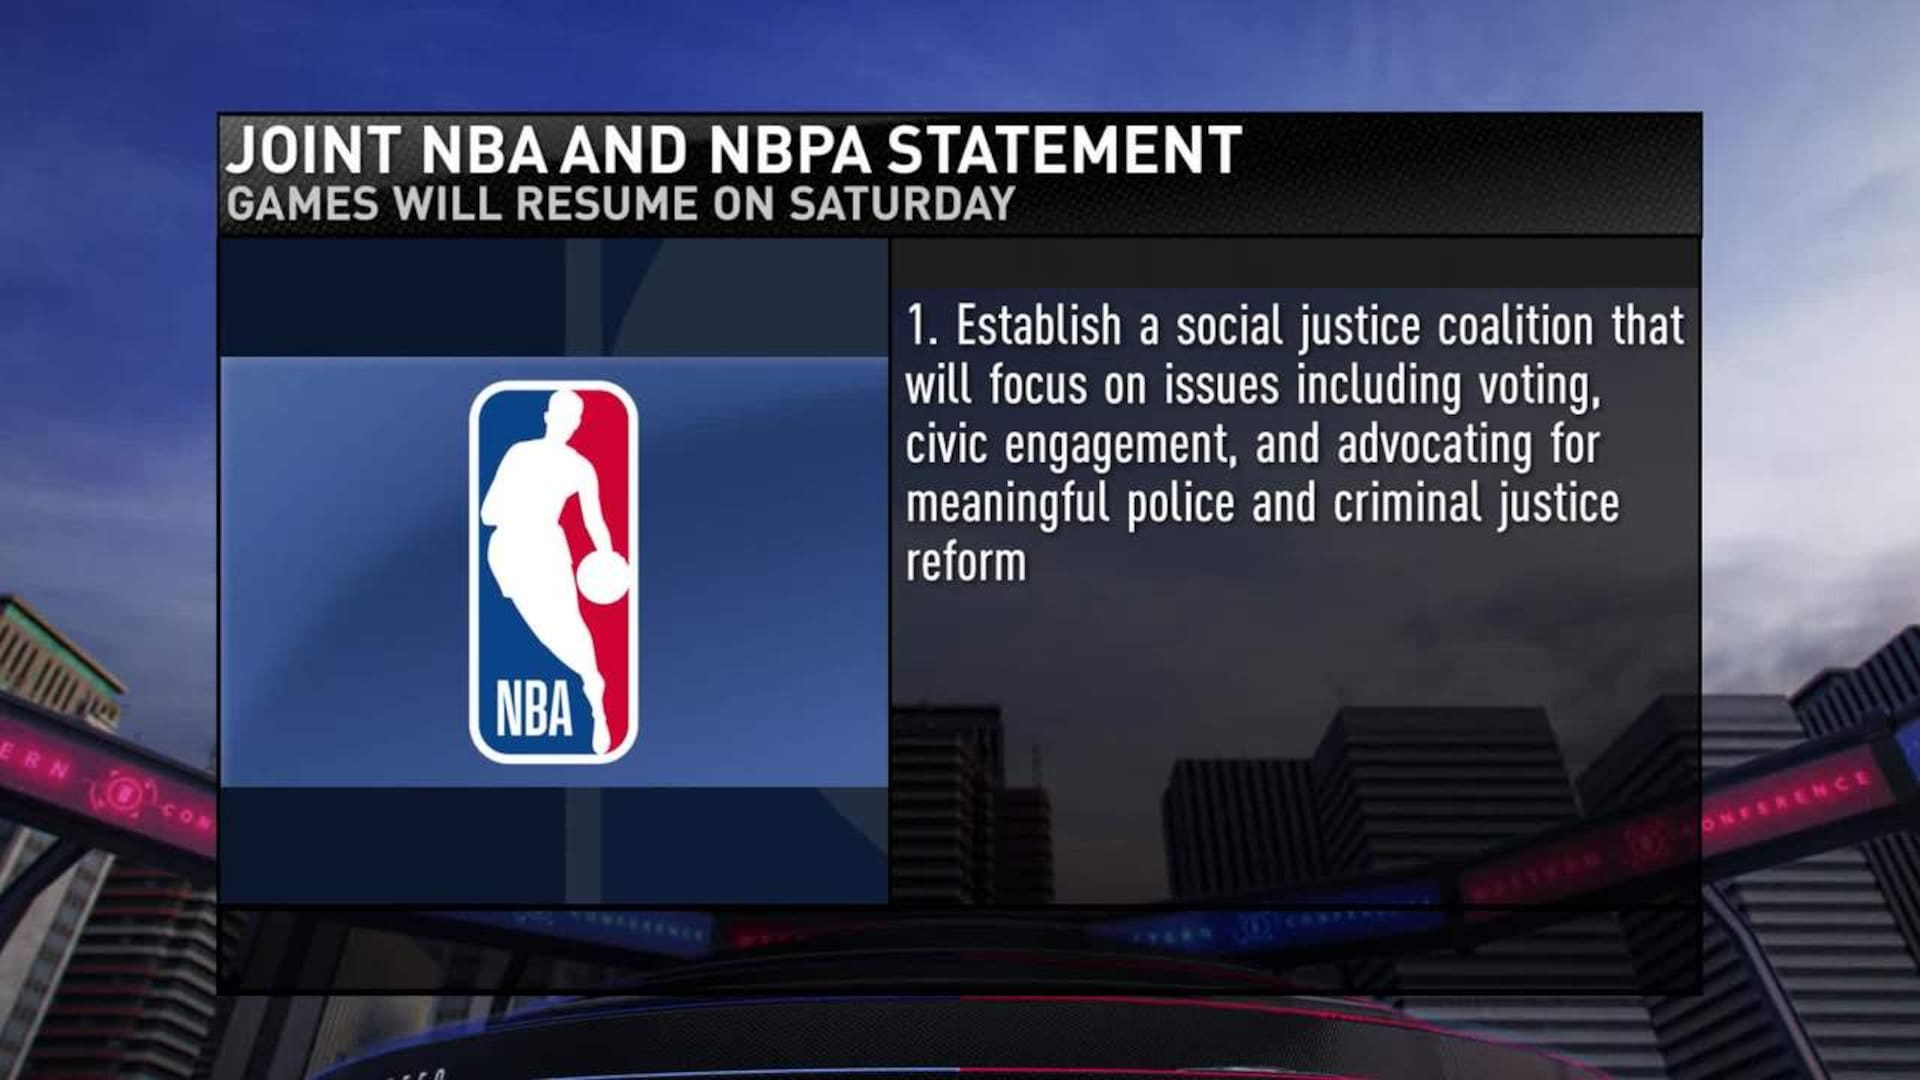 Latest news: NBA playoffs to resume on Aug. 29